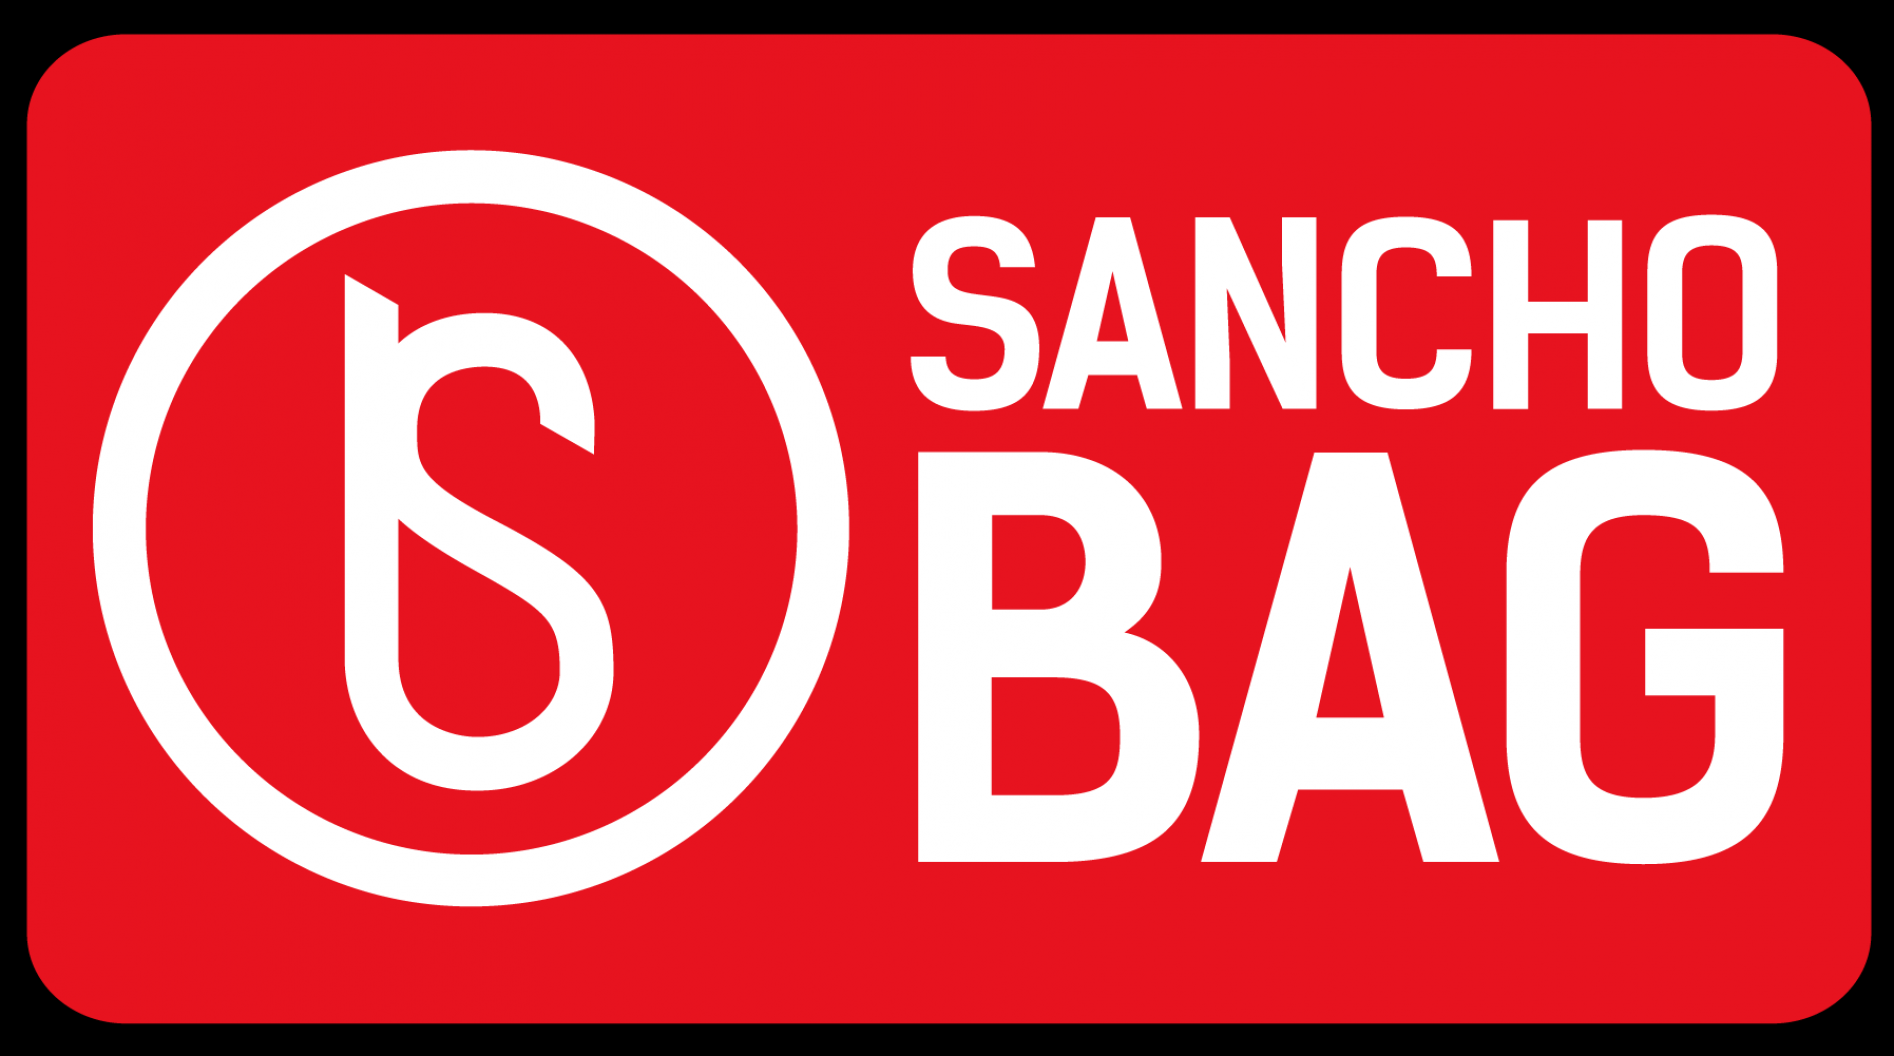 Sanchobag